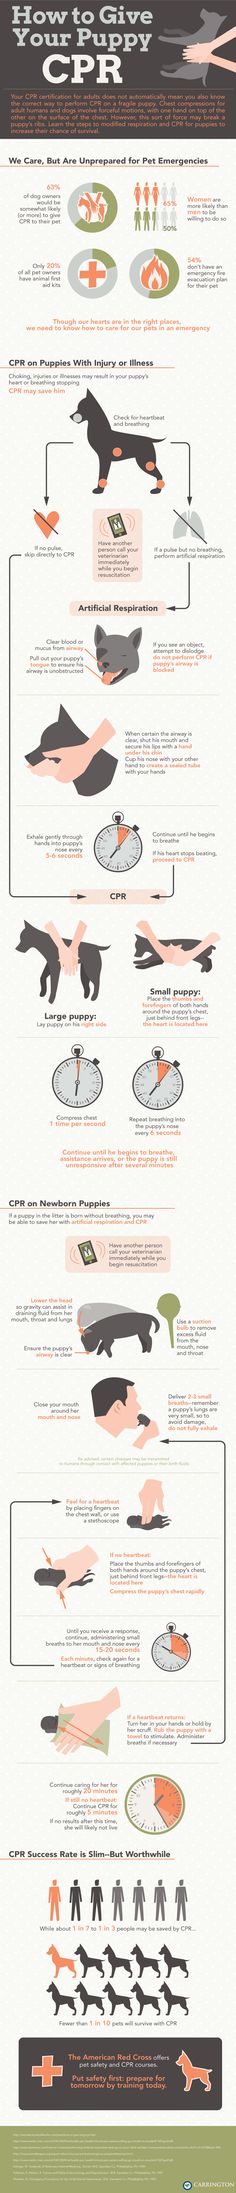 How to give Your Puppy CPR - this could save your pets life.